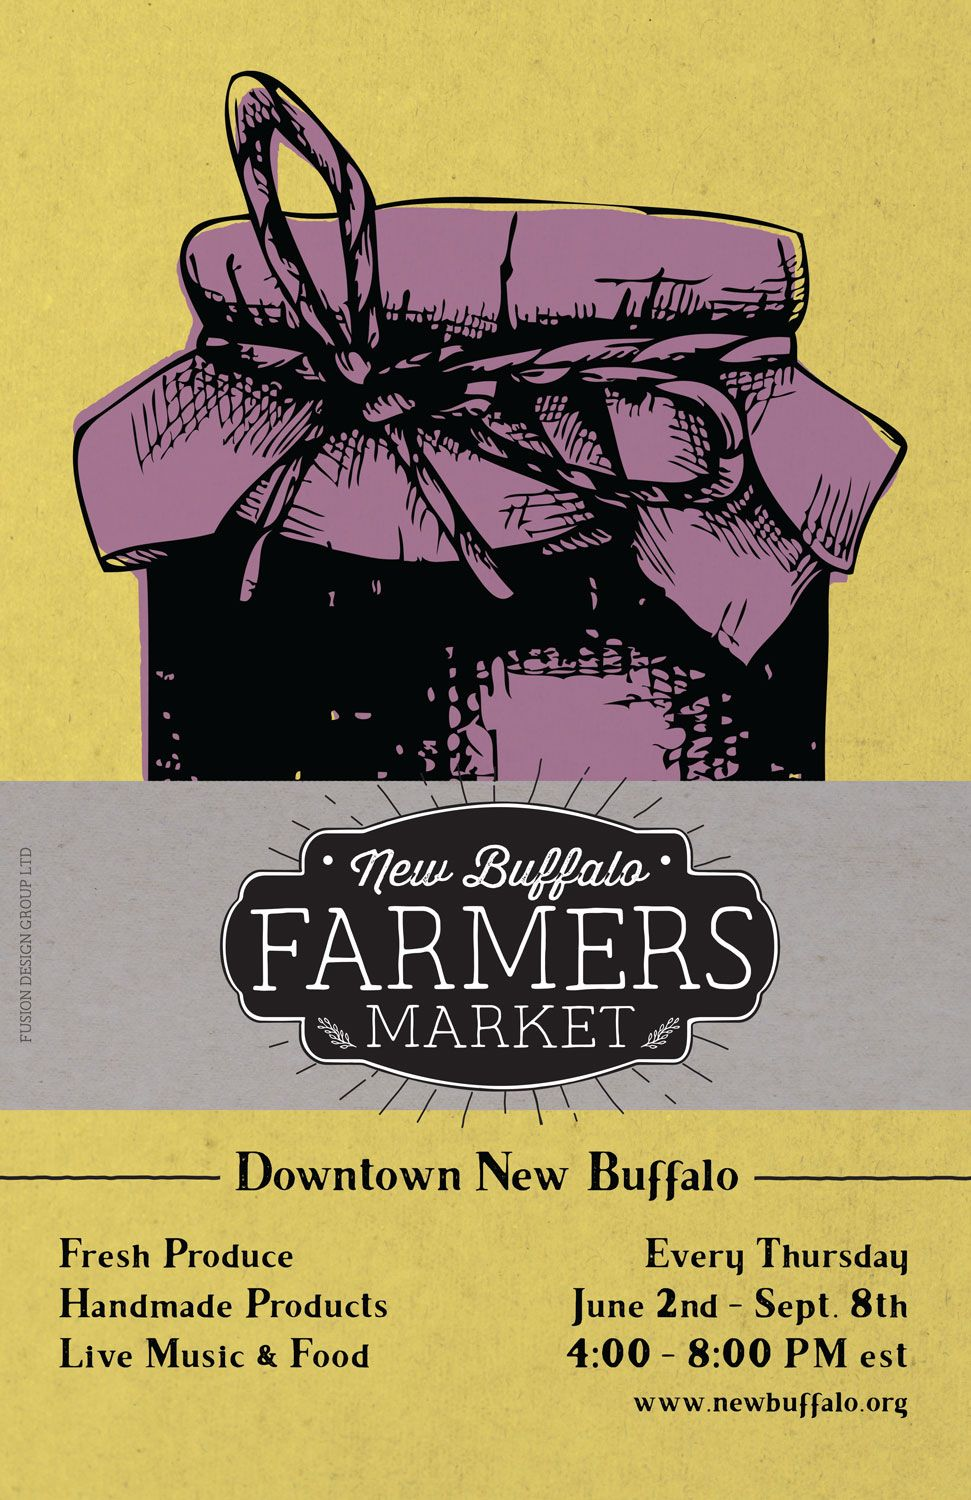 3 of 3 poster designed for farmers market in New Buffalo ...